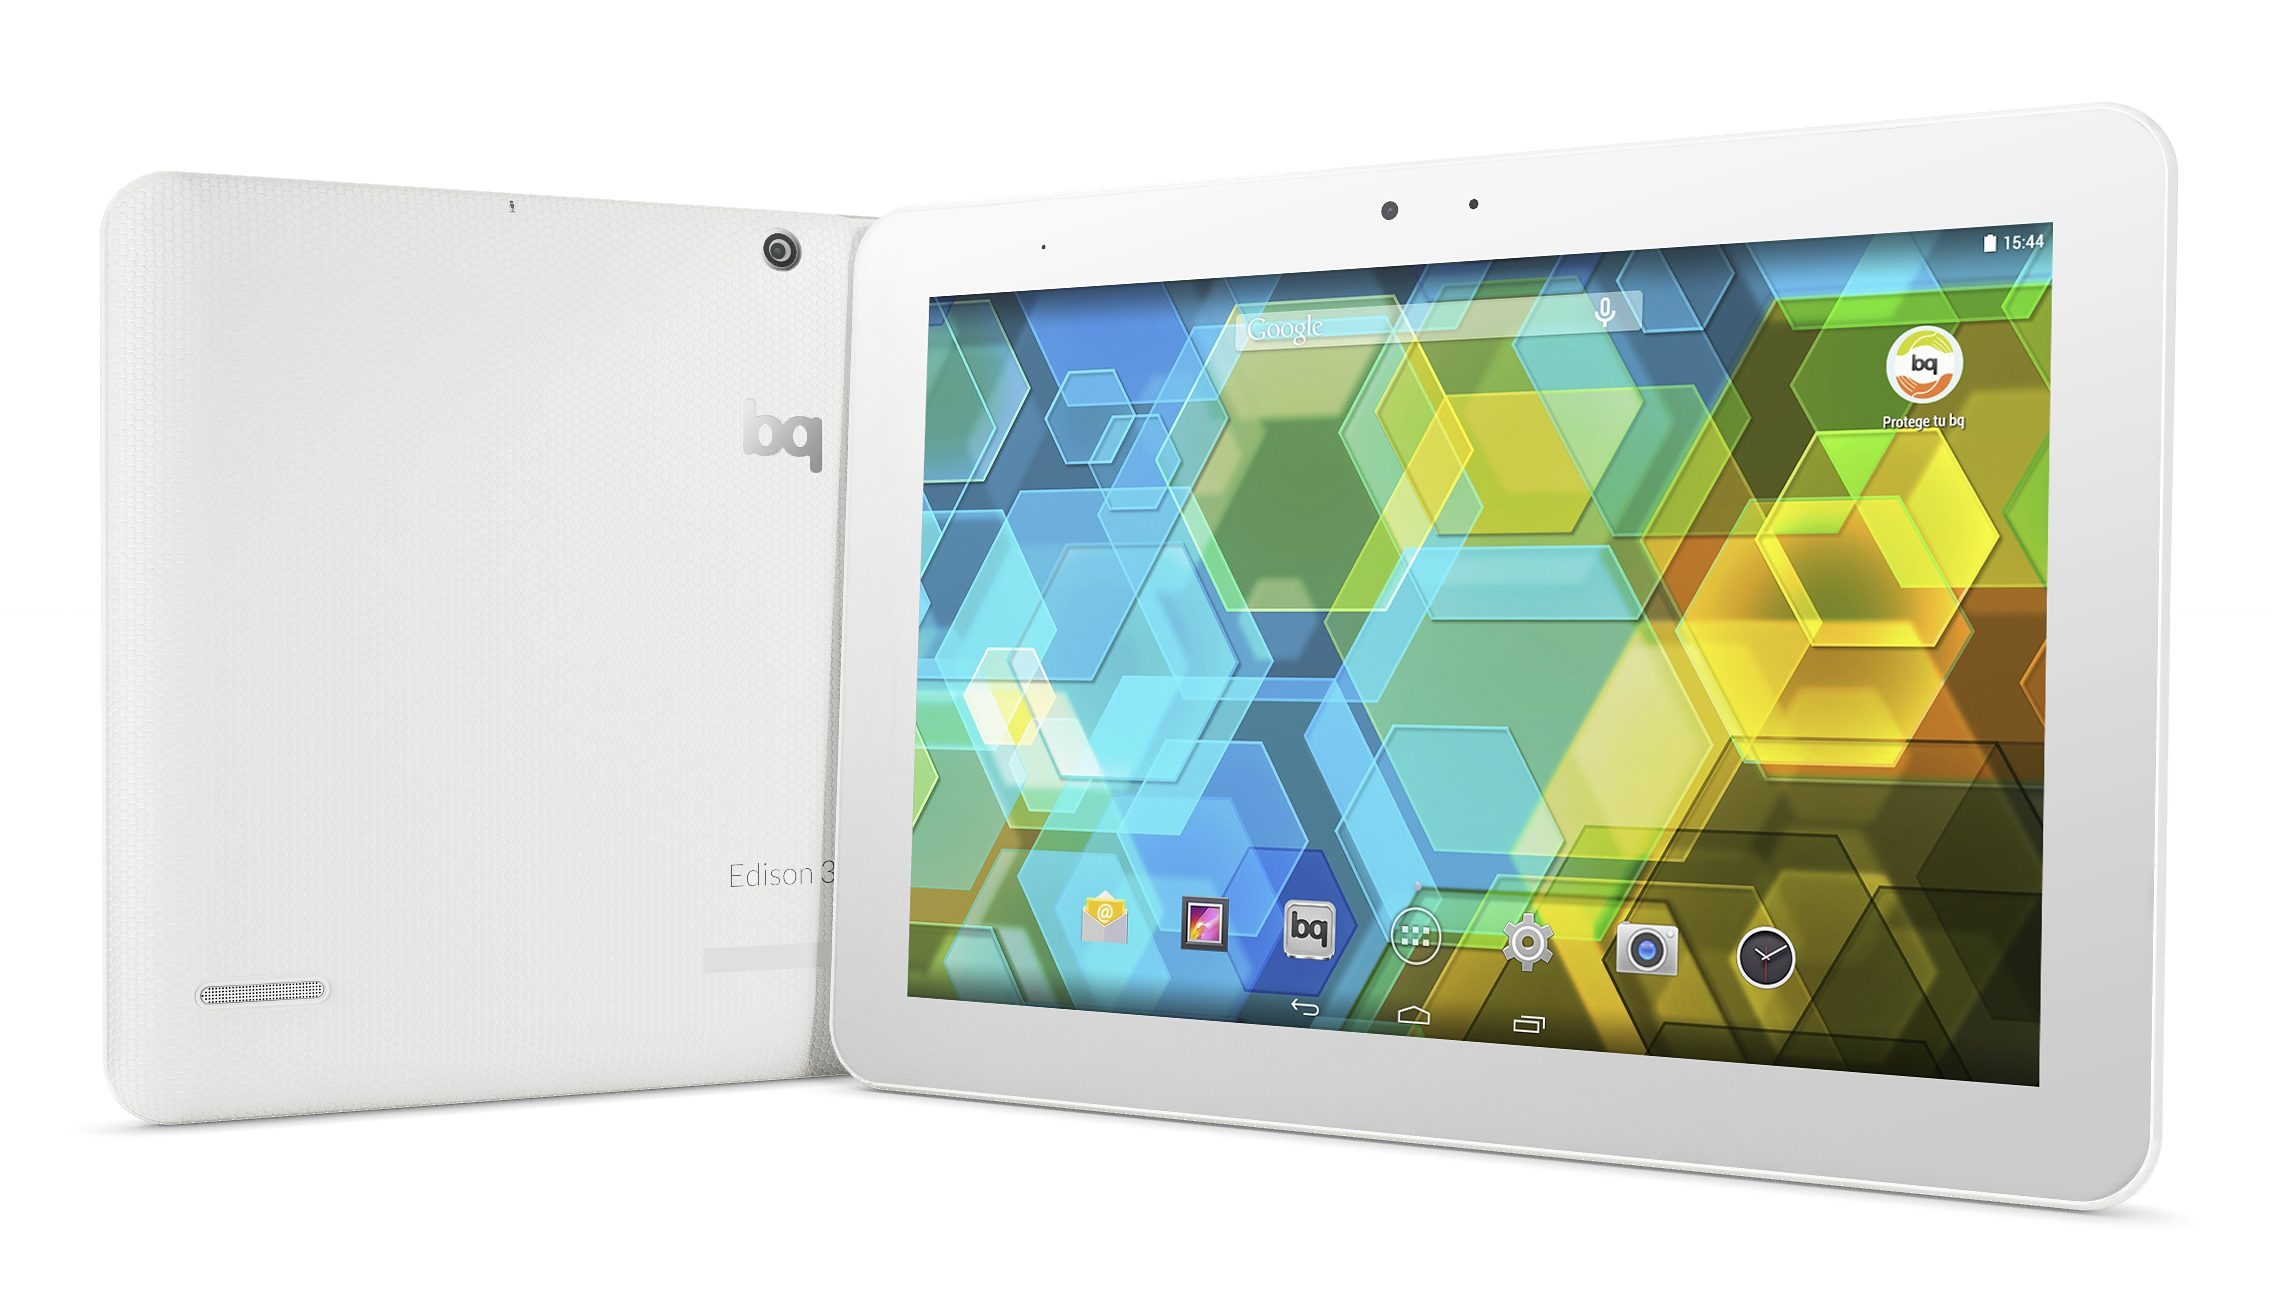 bq Android Tablet »Edison 3 10.1 WiFi 16+2 GB«